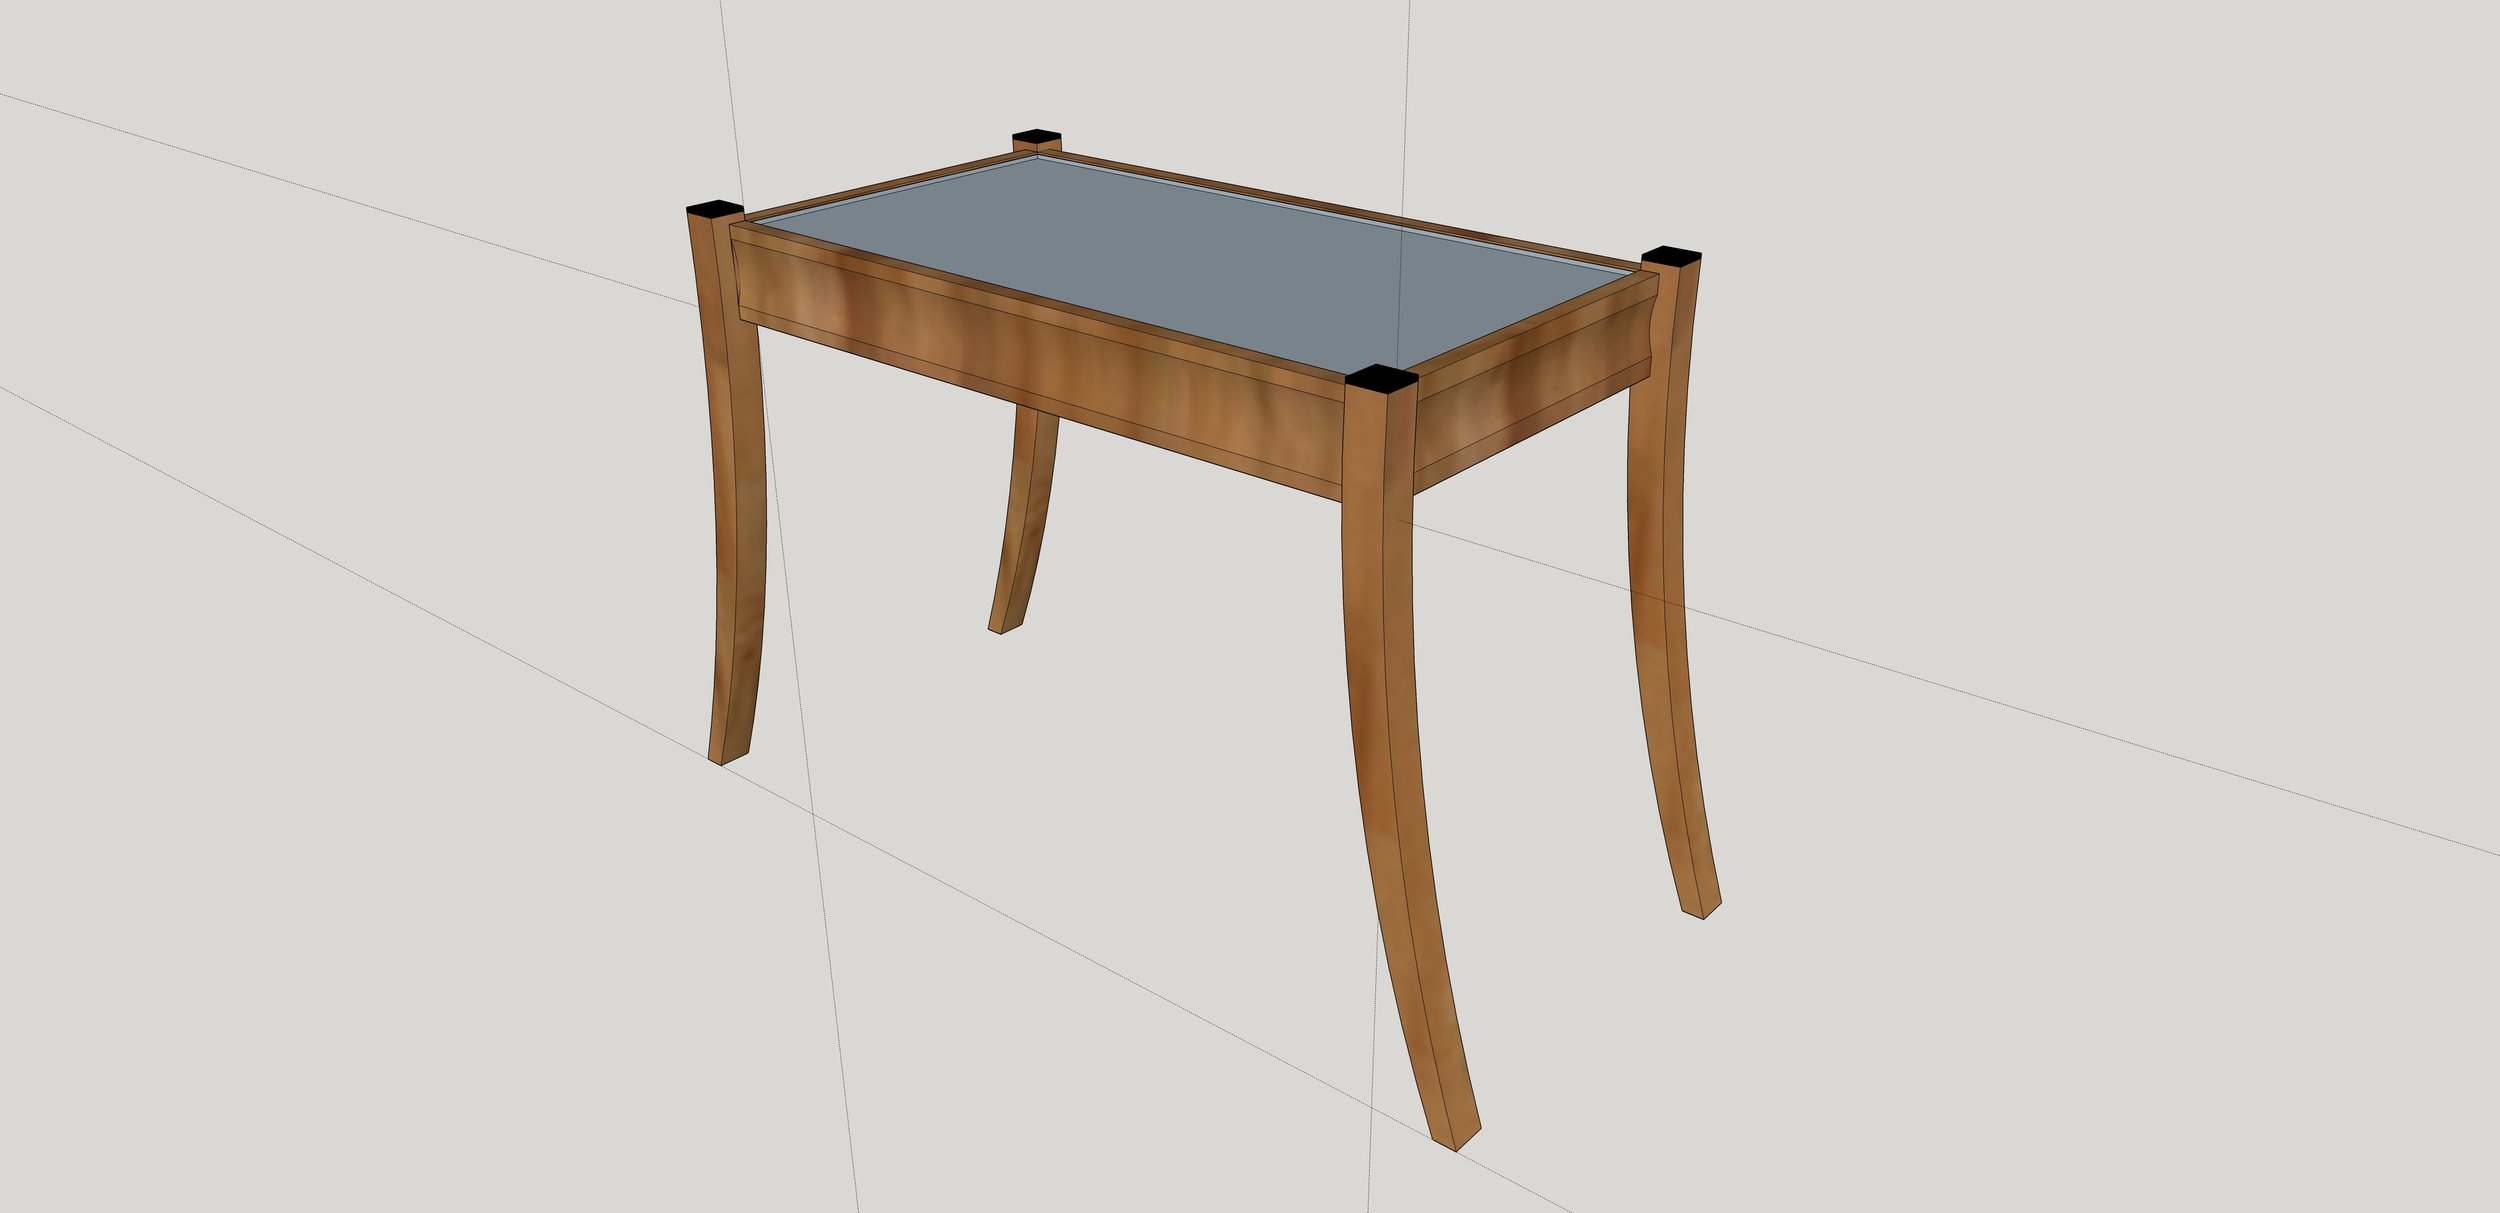 Showcase Table with glass top, scalloped aprons, and arced legs (ebony capos)